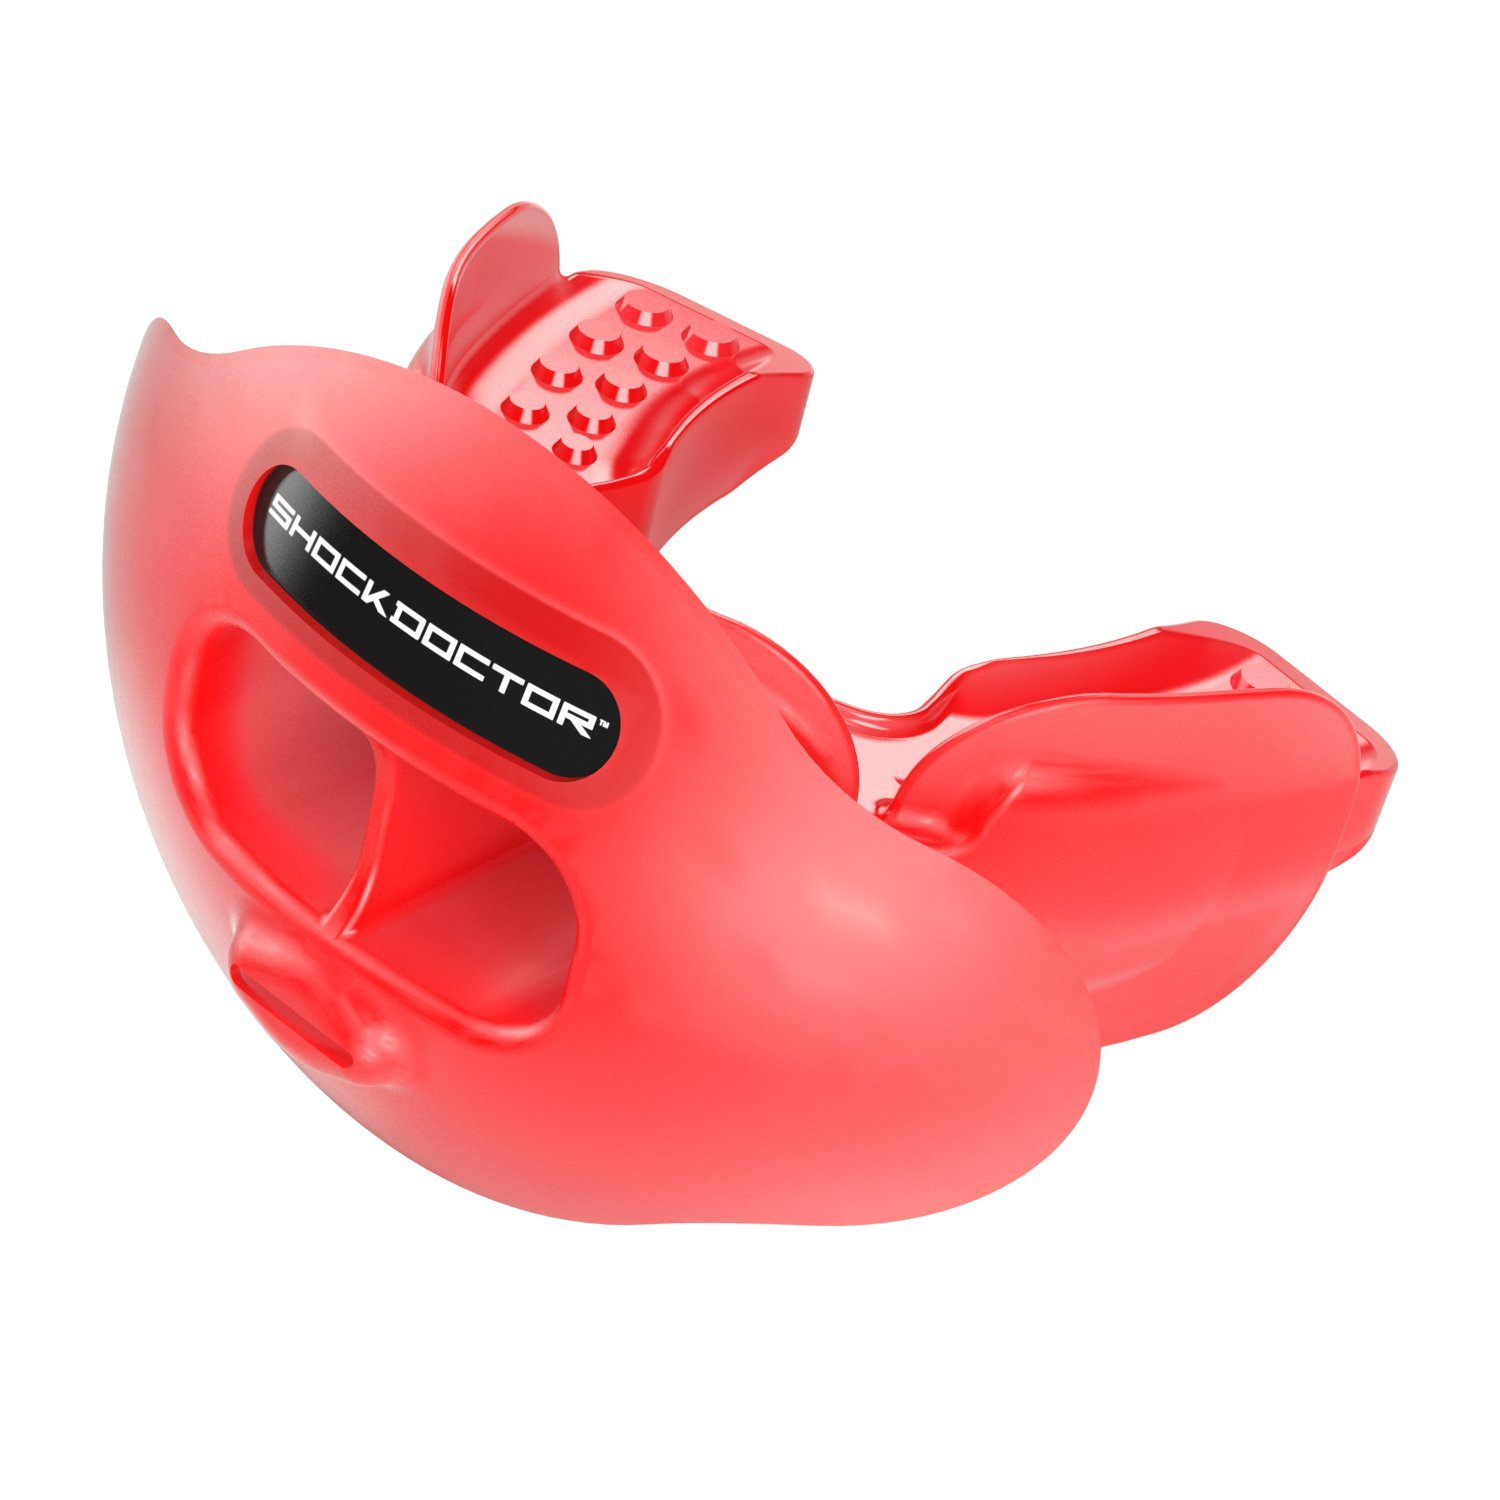 Shock Doctor Max Airflow Lip Guard / Mouth Guard. Football Mouthguard 3300. For Kids / Youth and Adults. Breathable Wide Opening Mouthpiece. Helmet Strap Included by Shock Doctor